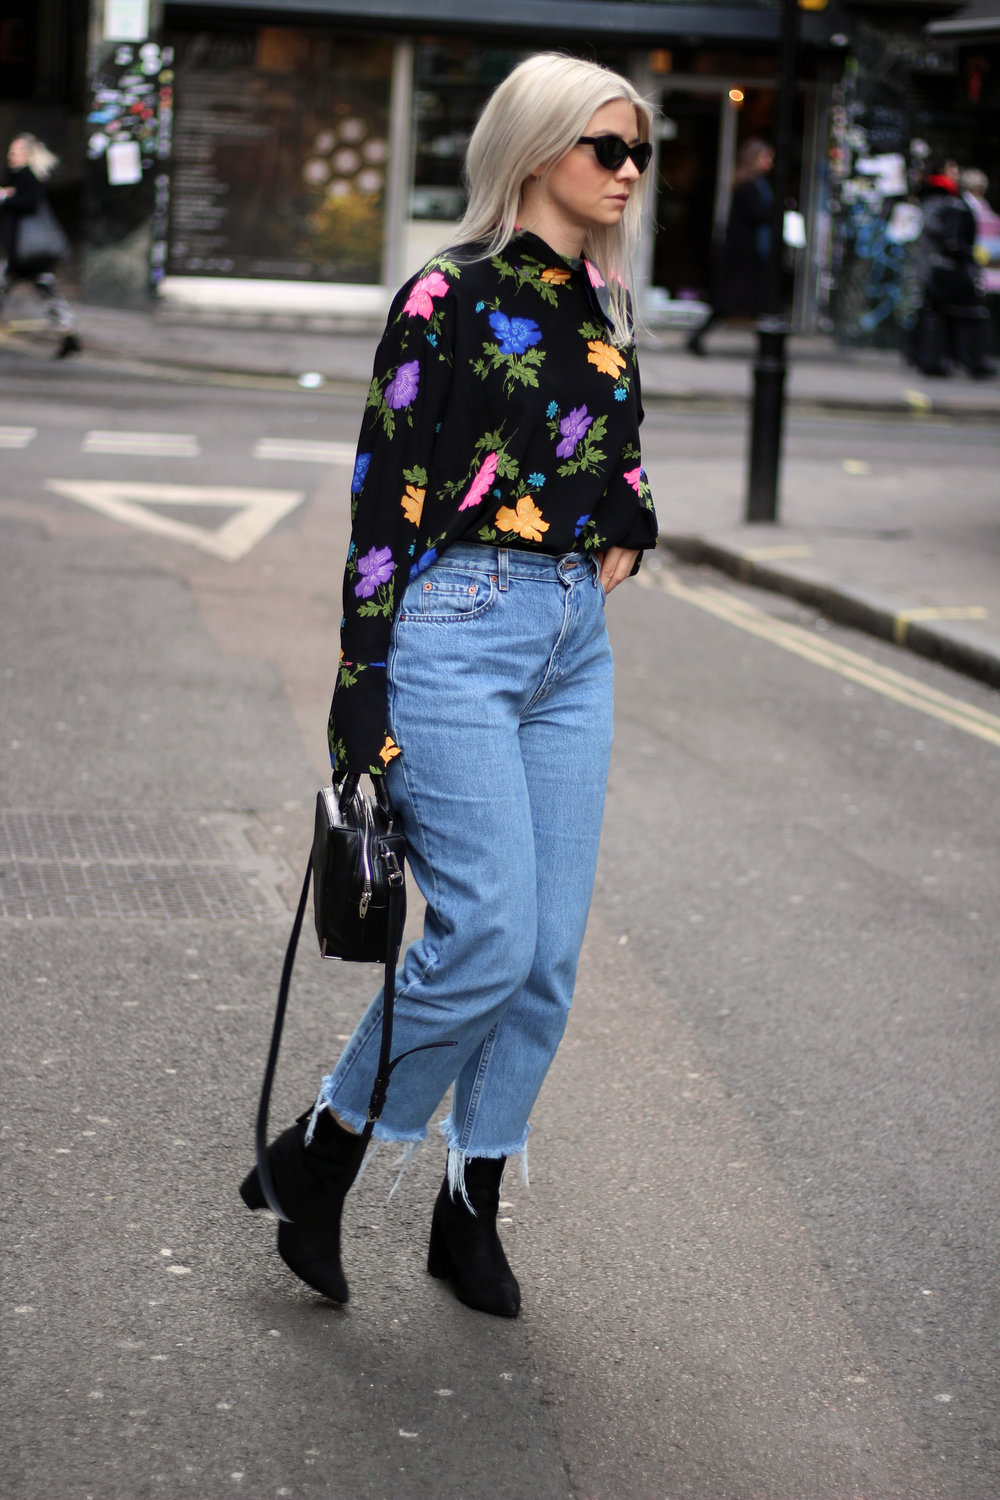 Topshop boutique silk blouse, blogging with a full time job, northern magpie, joey taylor 3